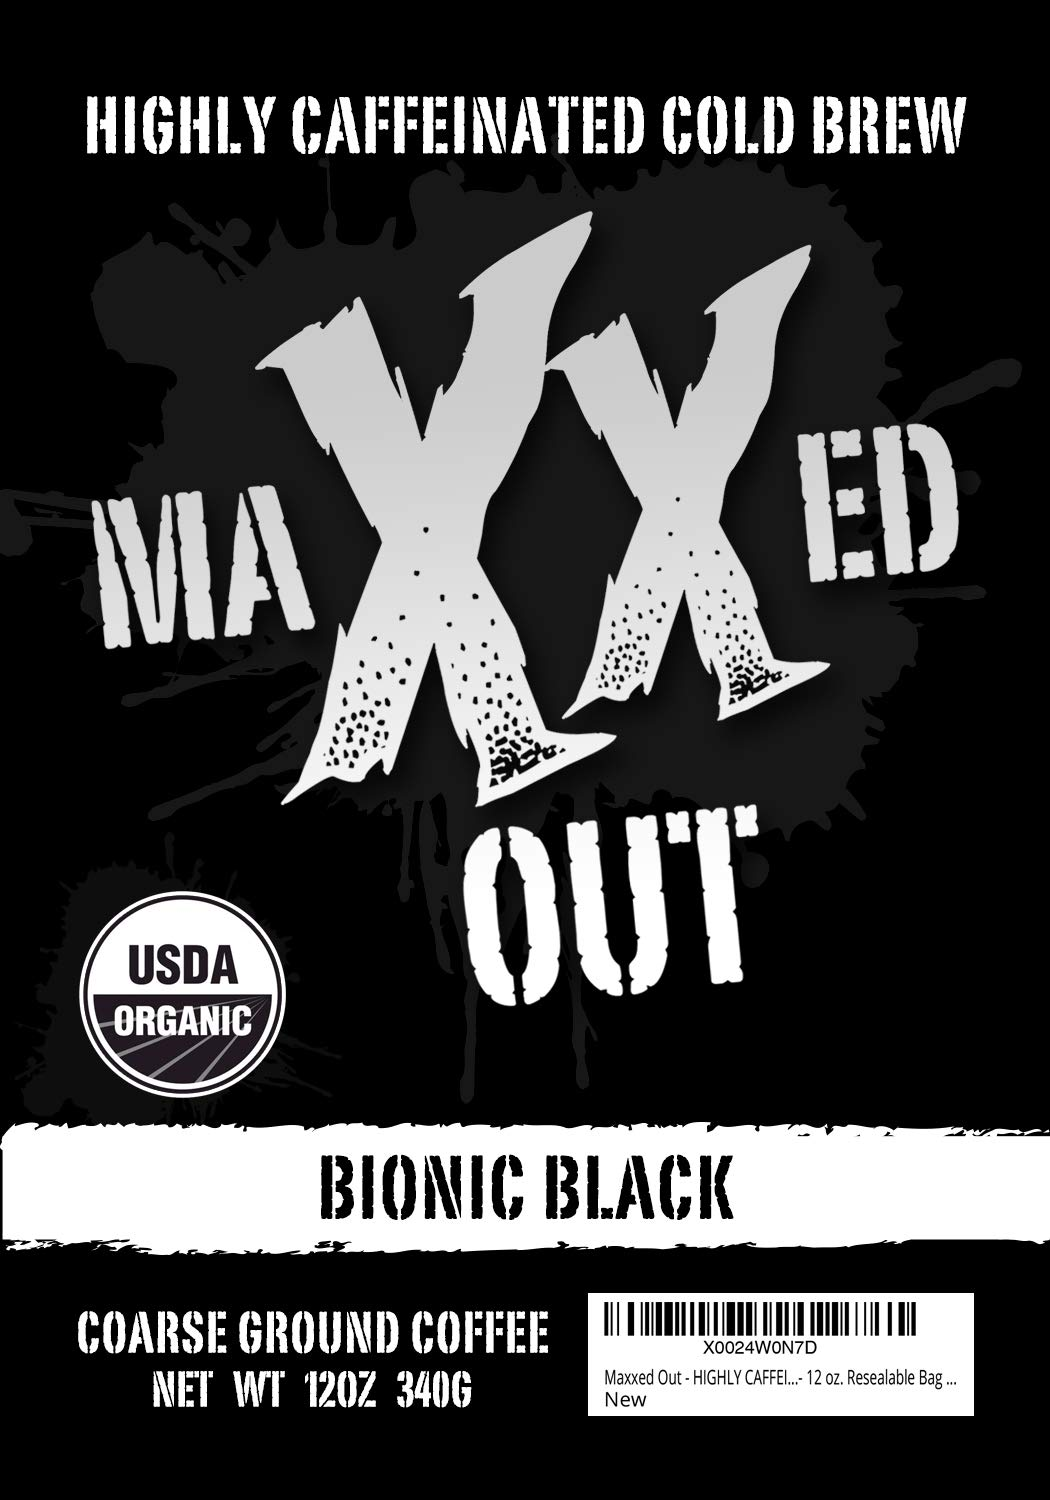 Bionic Black - Cold Brew Coffee - HIGHLY CAFFEINATED - USDA Organic - Coarse Ground - Maxxed Out - 12 oz. Resealable Bag